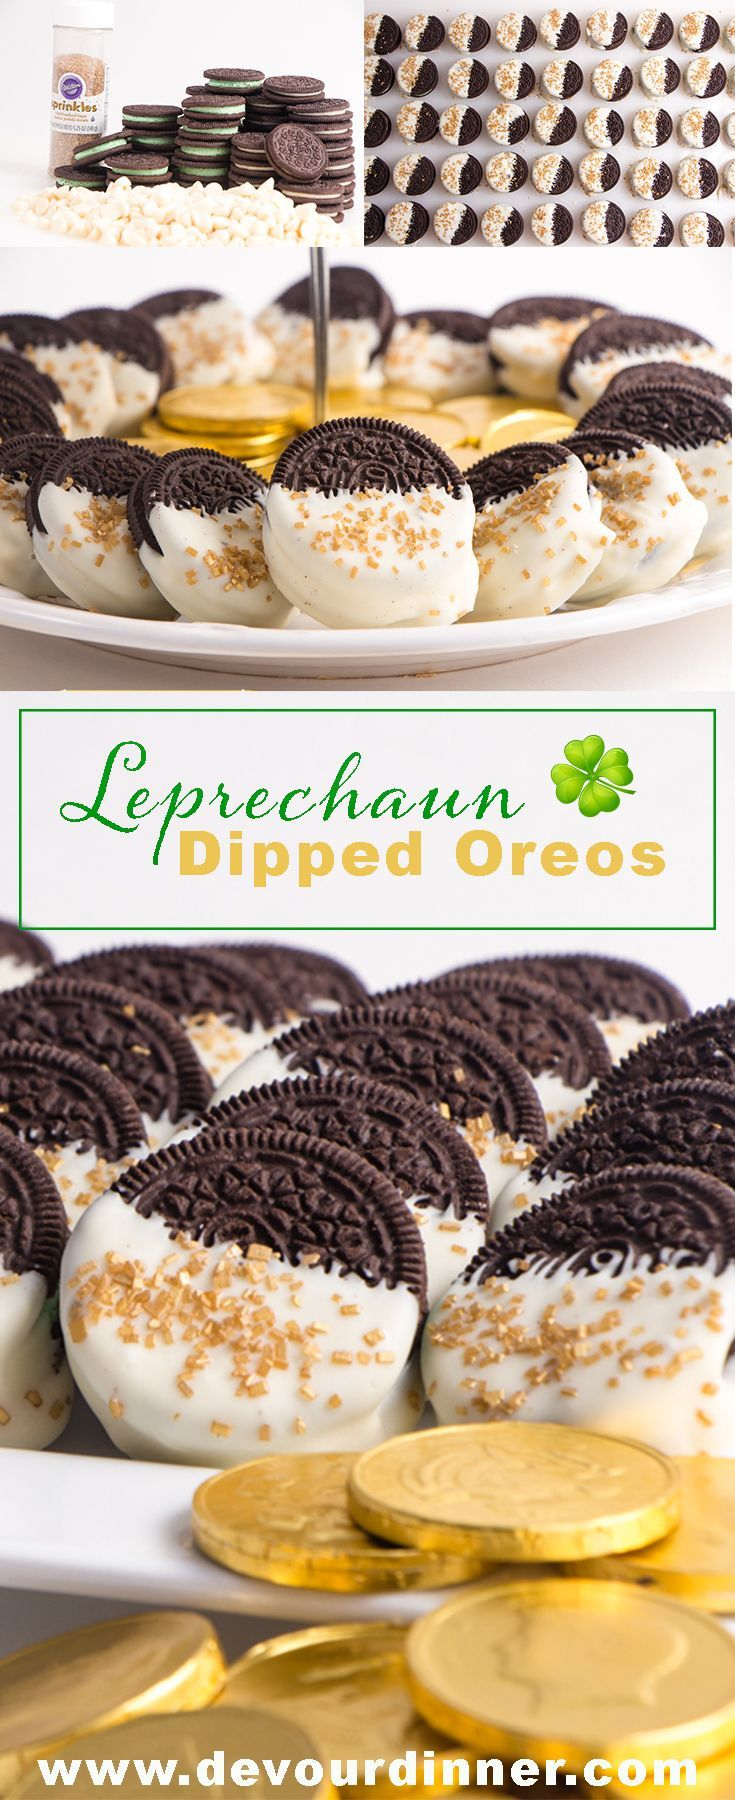 Dipped Oreos - Devour Dinner Catch a Leprechaun and steal his gold.  This quick and easy dessert will treat your tastebuds.  Luck of the Irish.  #Oreo #Whitechocolate #Recipe #recipes #food #Foodie #foodblogger #Buzzfeast #Dessert #dessertrecipes #stPatri